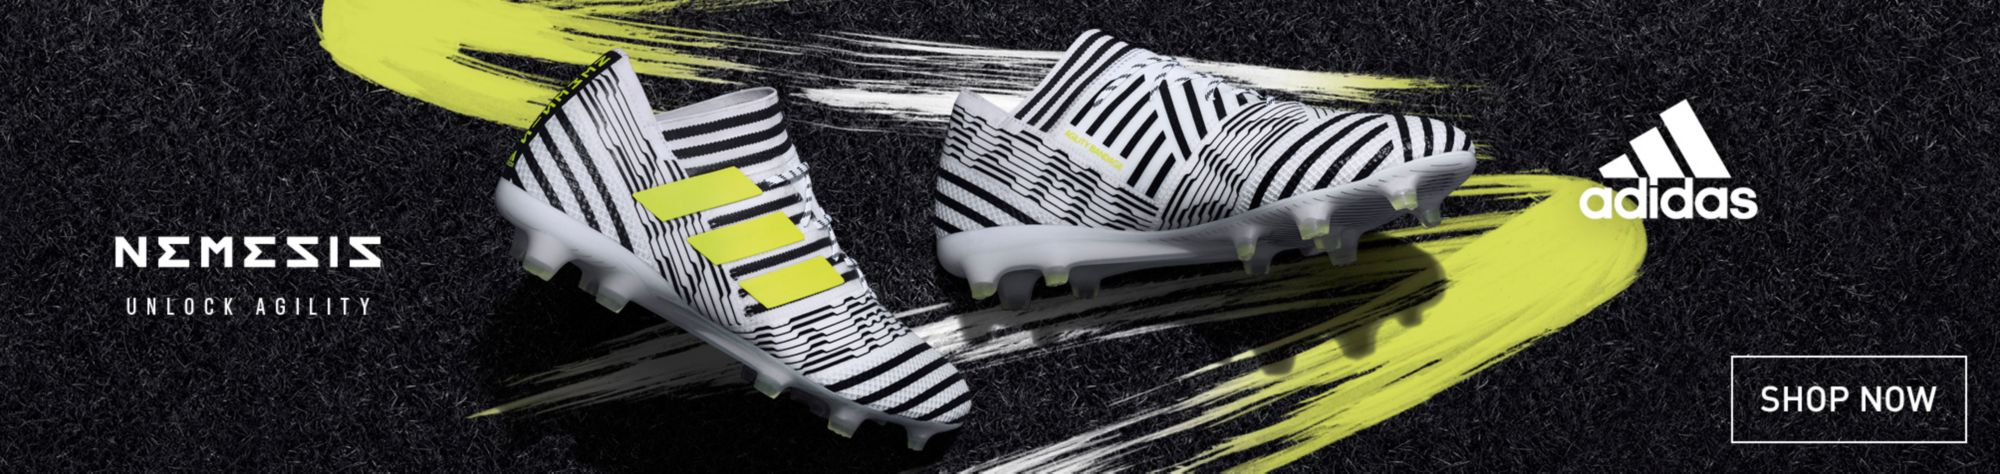 Shop adidas Nemeziz Cleats